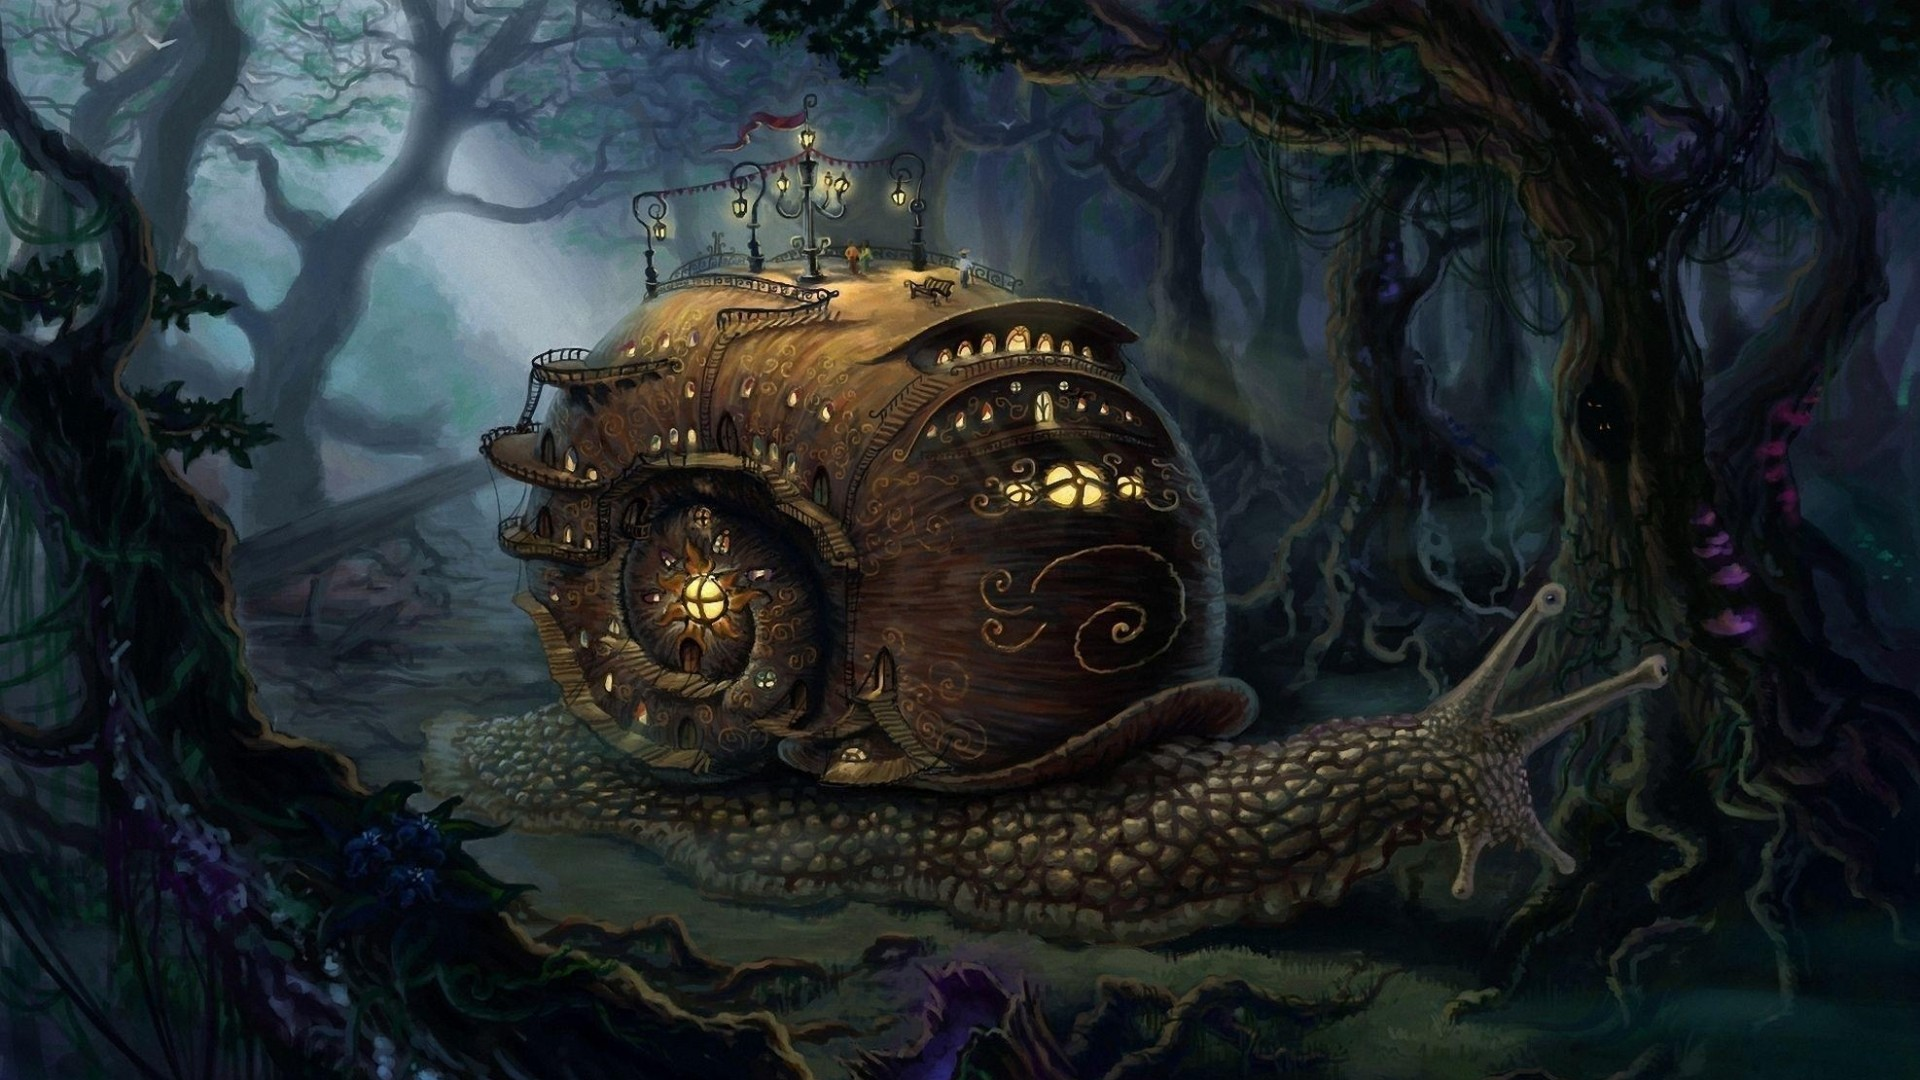 Fantasy Forest Hd High Quality Wallpapers HD Wallpapers px 1.05  MB | Wallpapers | Pinterest | Fantasy art landscapes, Steampunk city and  Steampunk